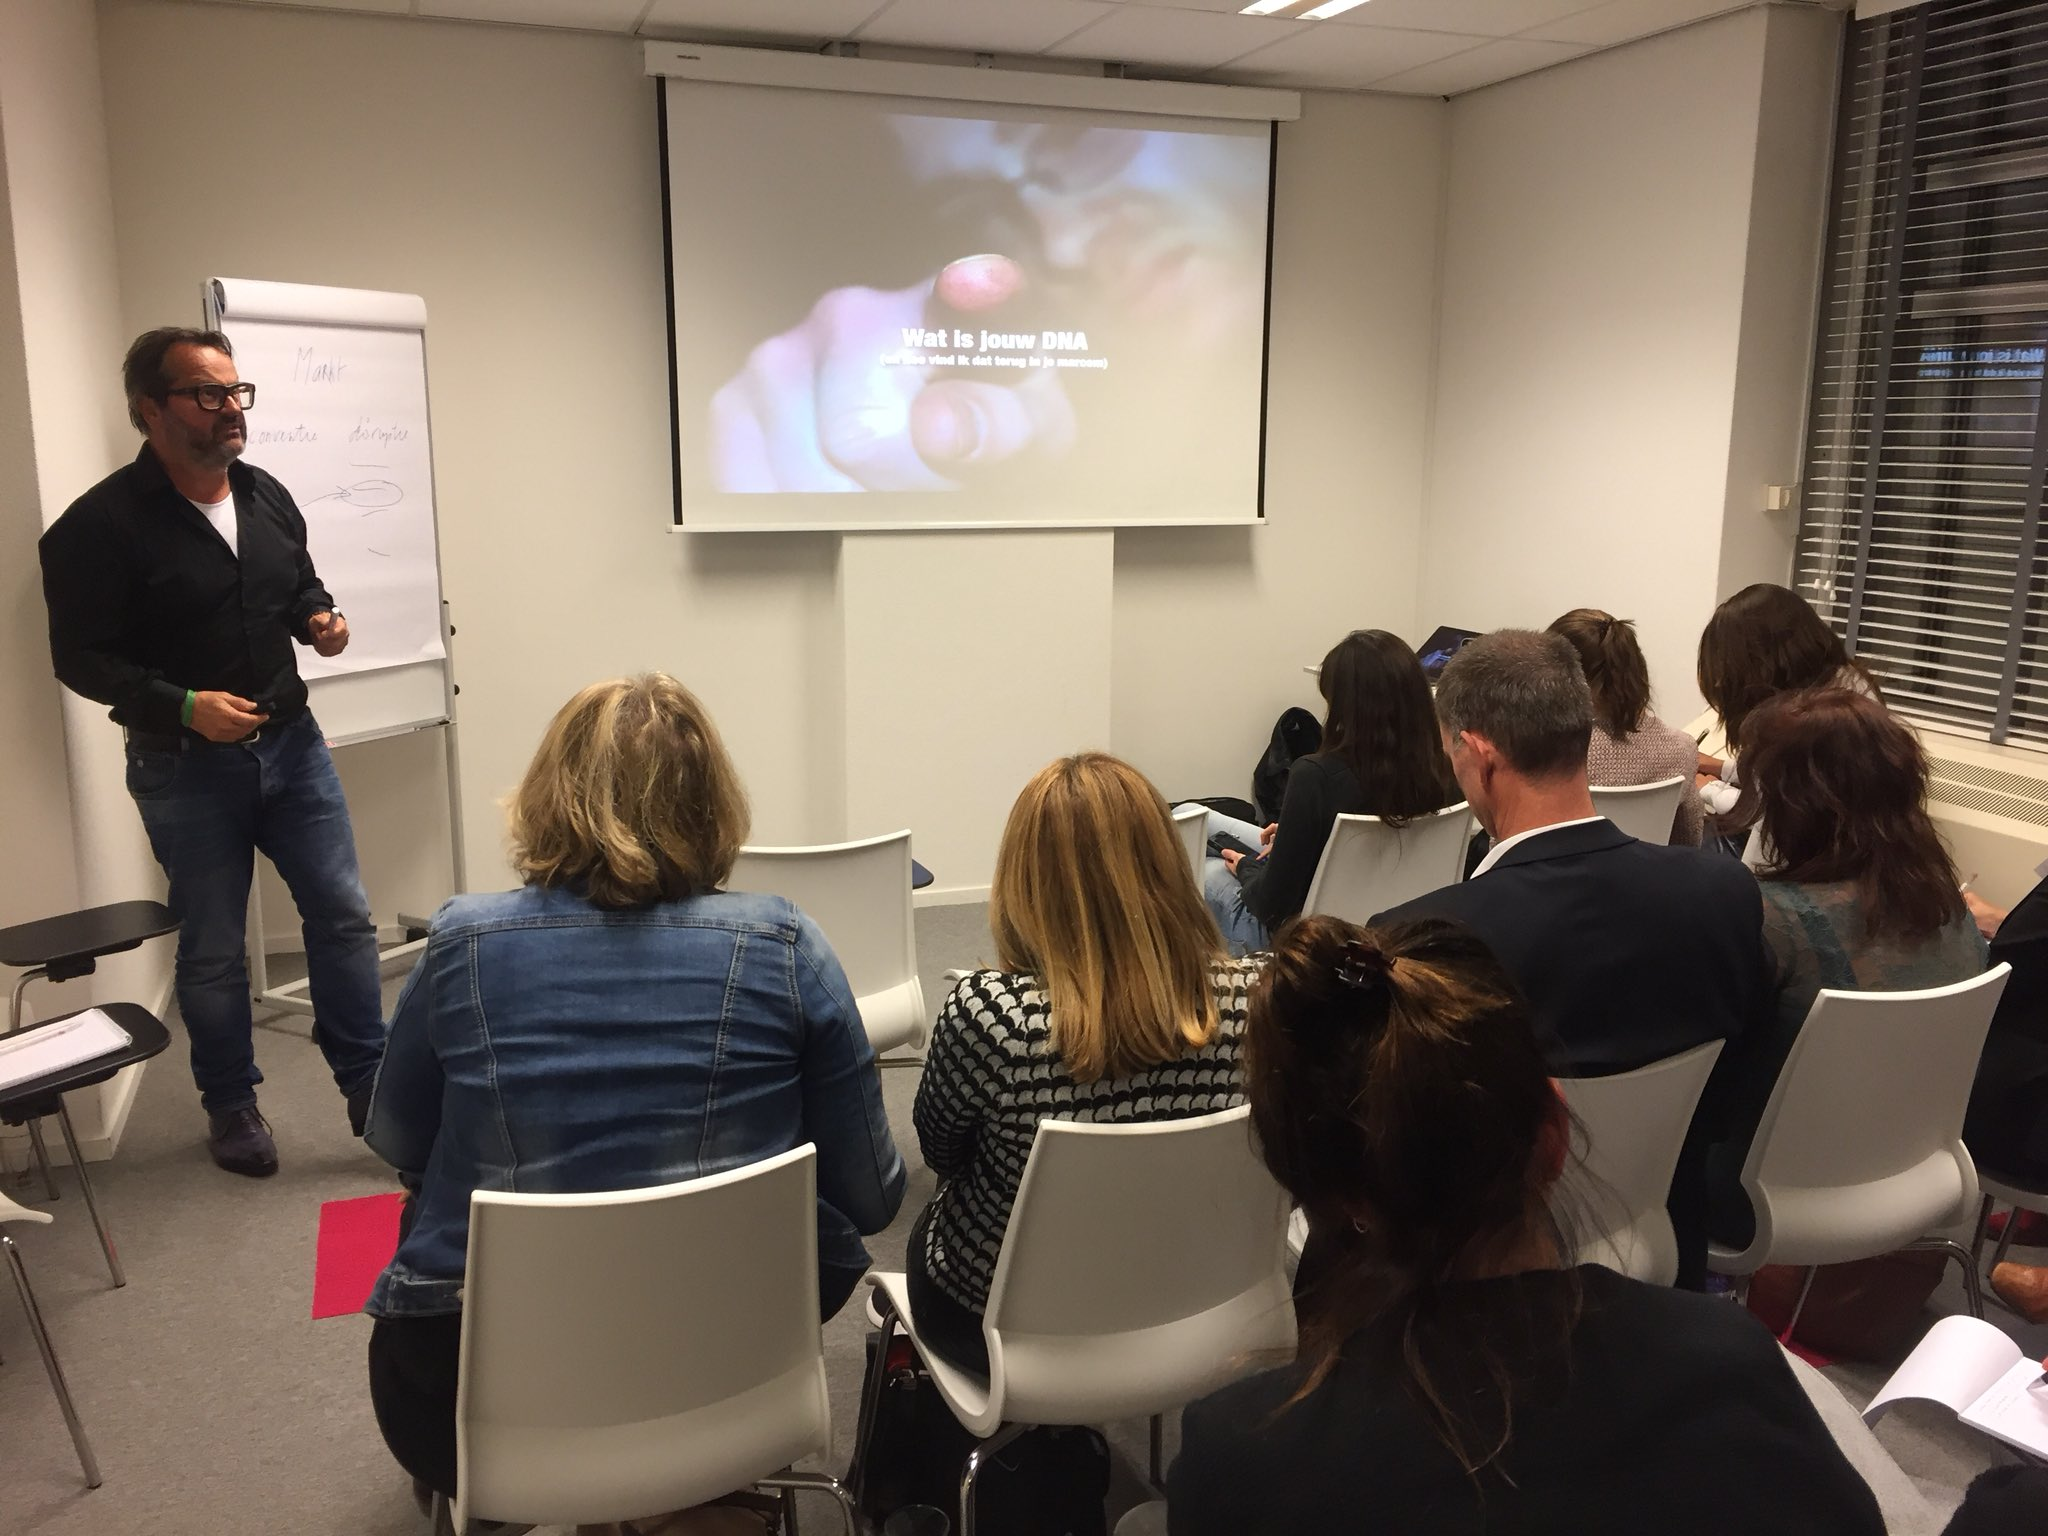 RT @babbagecompany: Keuzes maken is gekozen worden. #Workshop #marketing @corhospes https://t.co/aKx6AdLvez